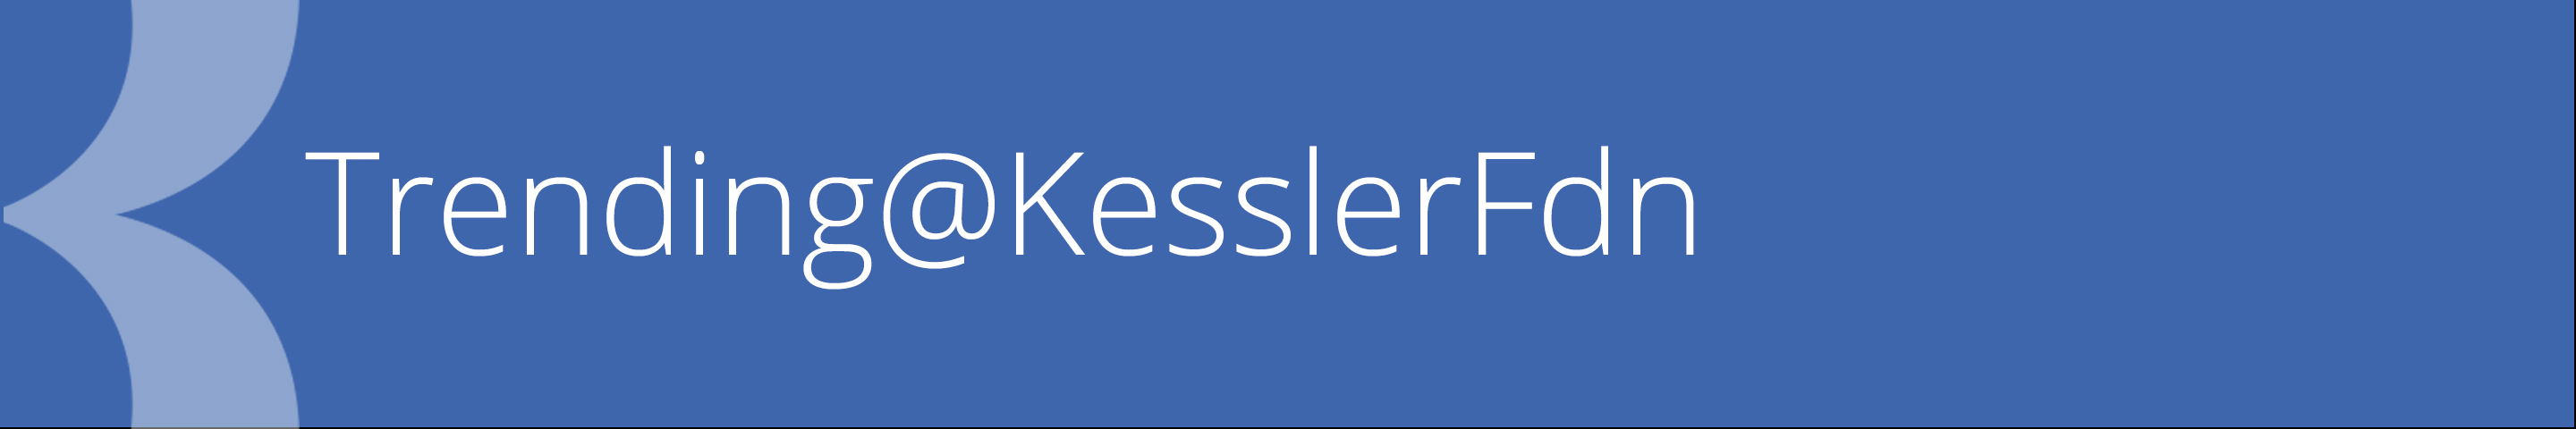 trending at kessler foundation